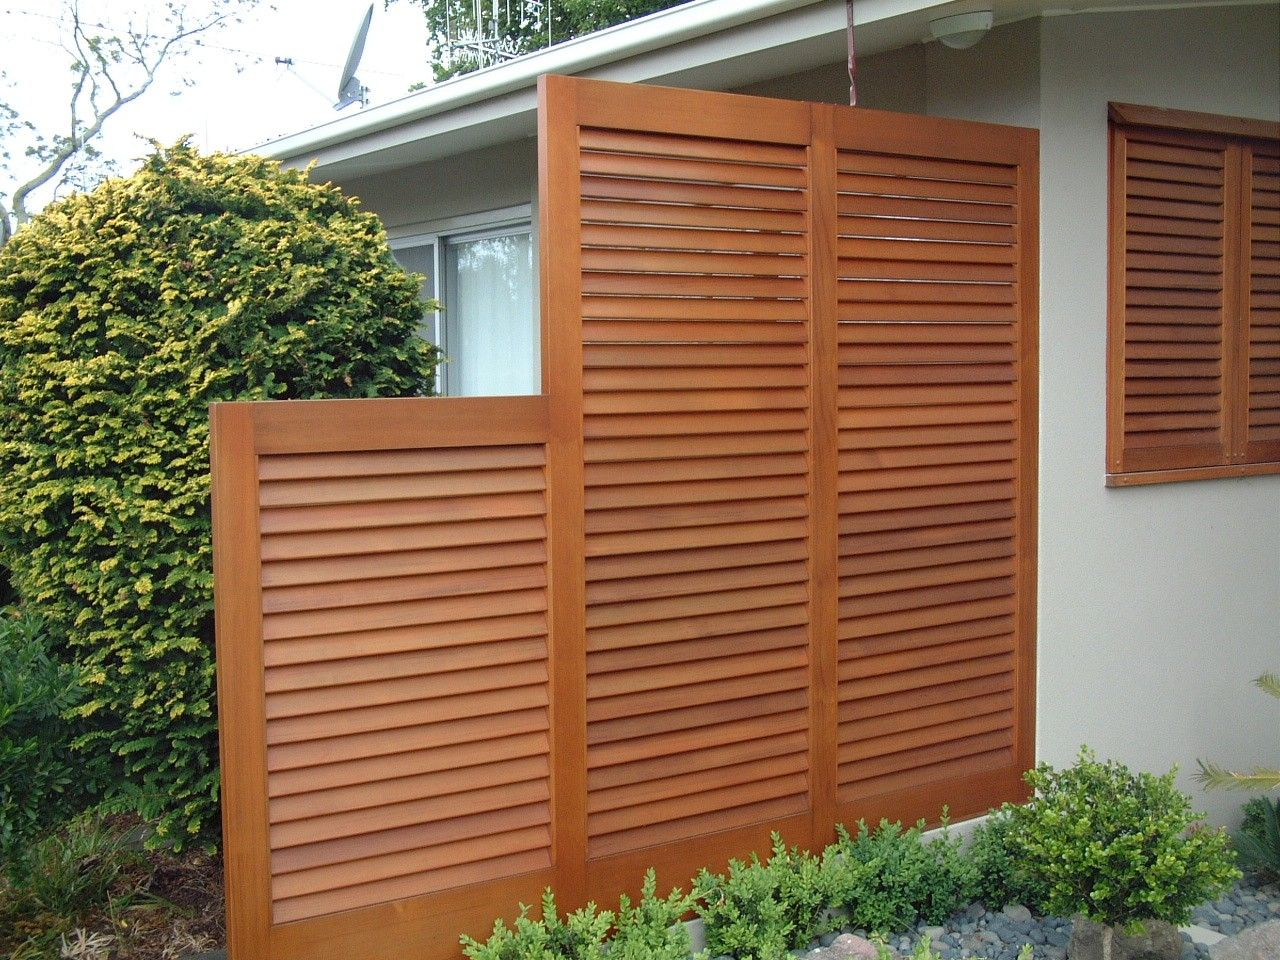 Beautiful exterior outdoor privacy screens shop at for Tall outdoor privacy screen panels